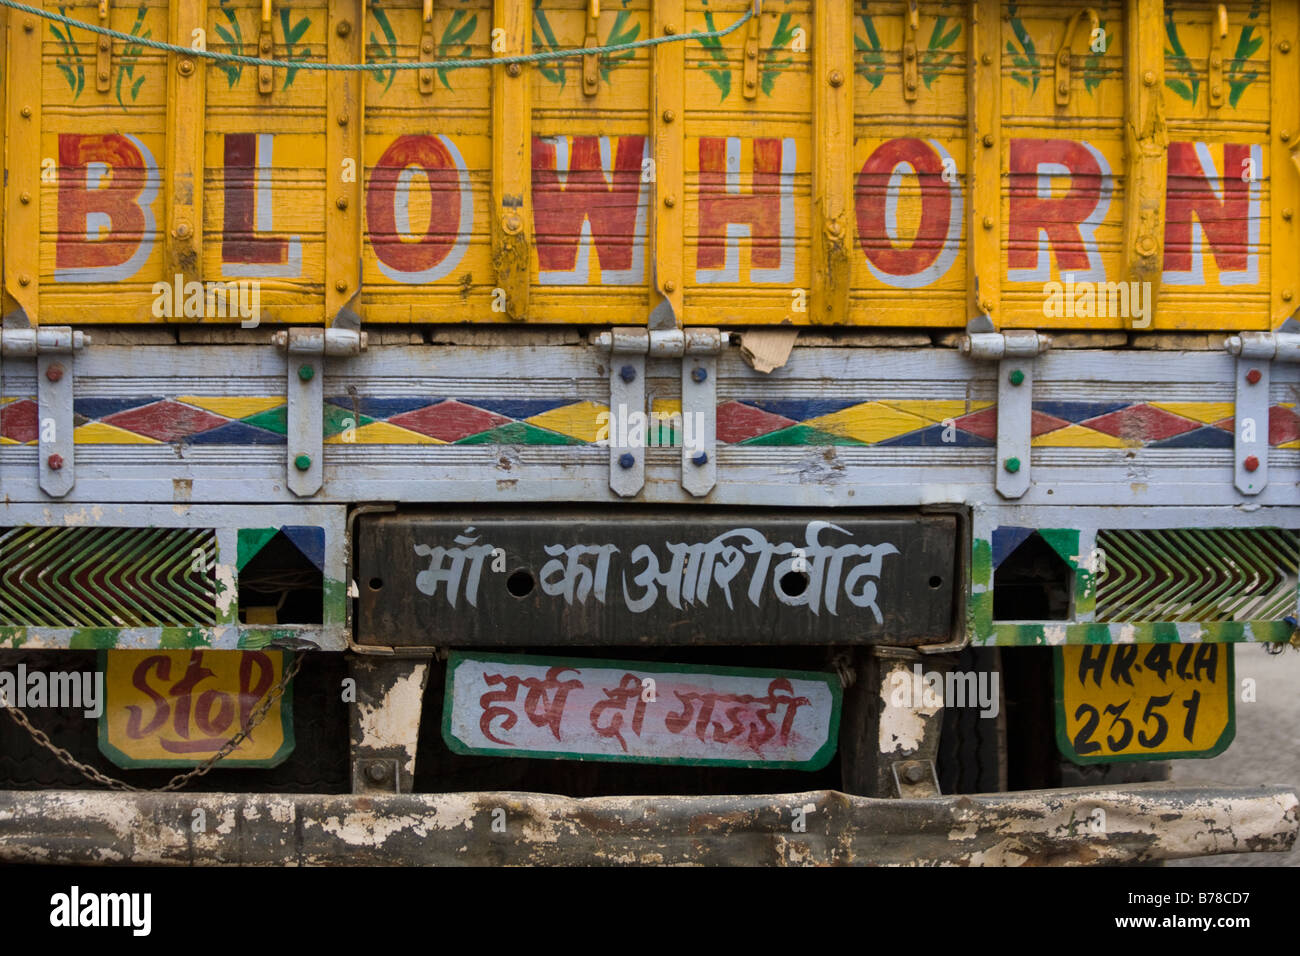 Rear of truck in India, common sign BLOWHORN - Stock Image